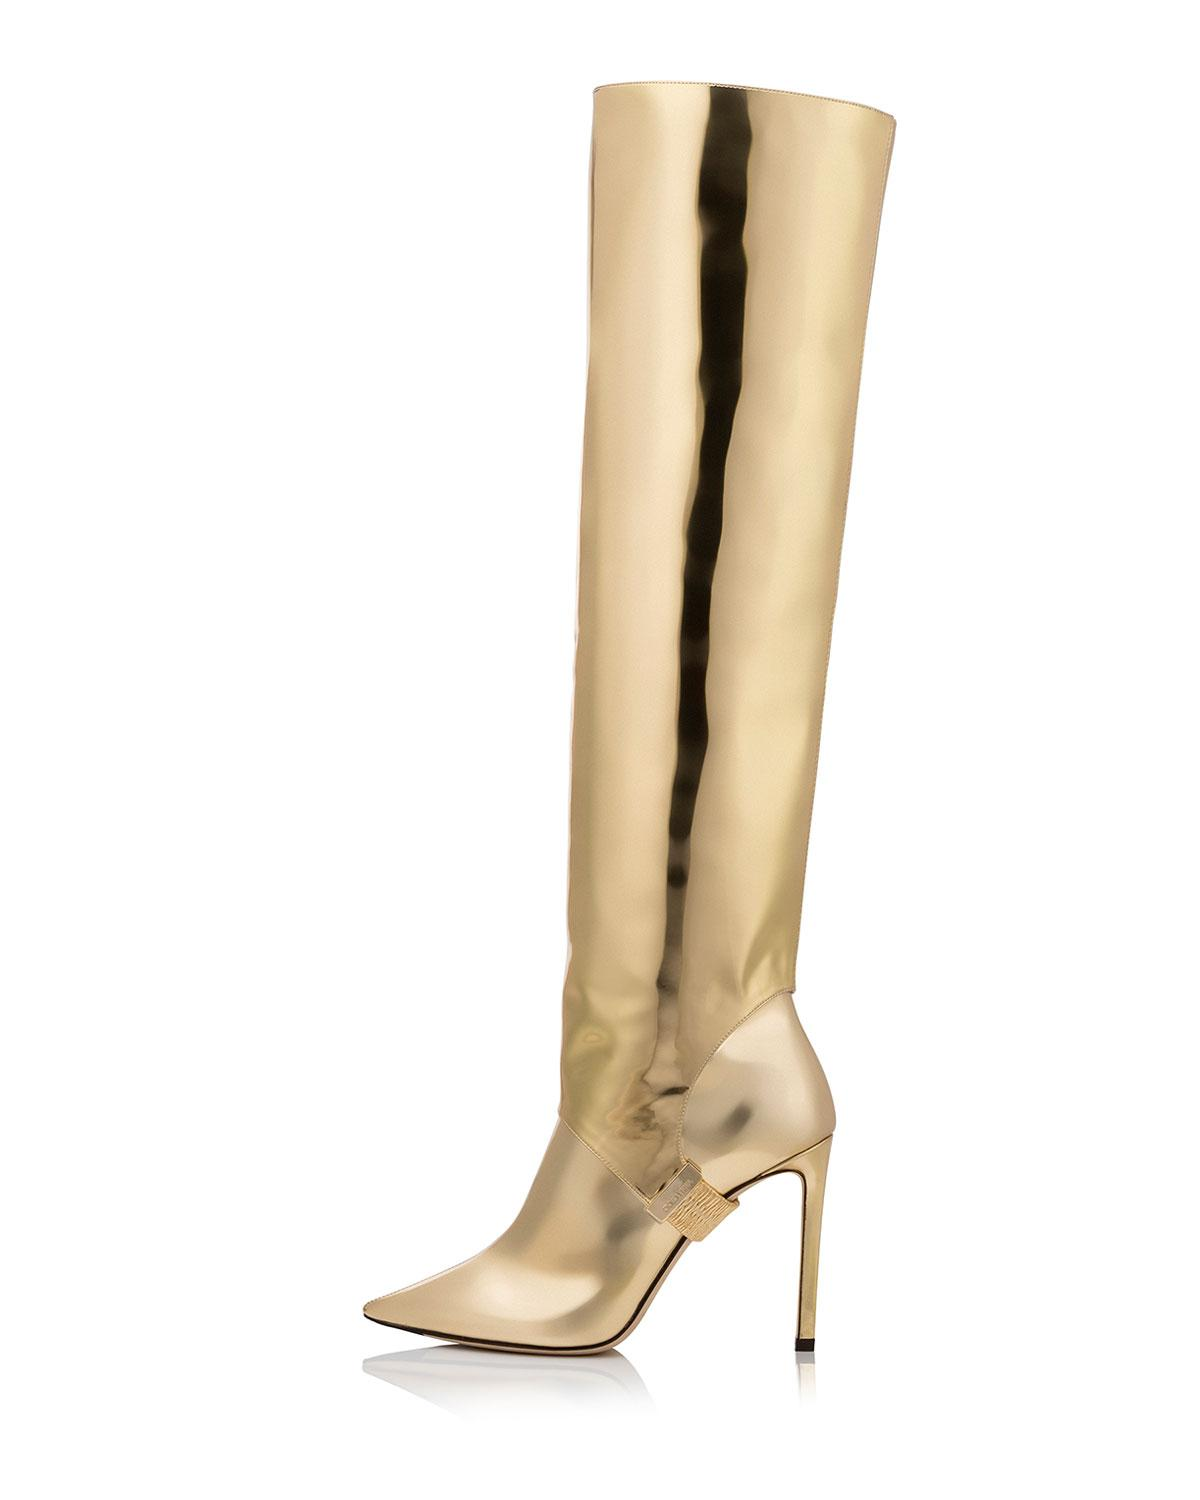 c2094ddc10d1 Lyst - Jimmy Choo Hurley Liquid Mirror Leather Two-piece Knee Boots